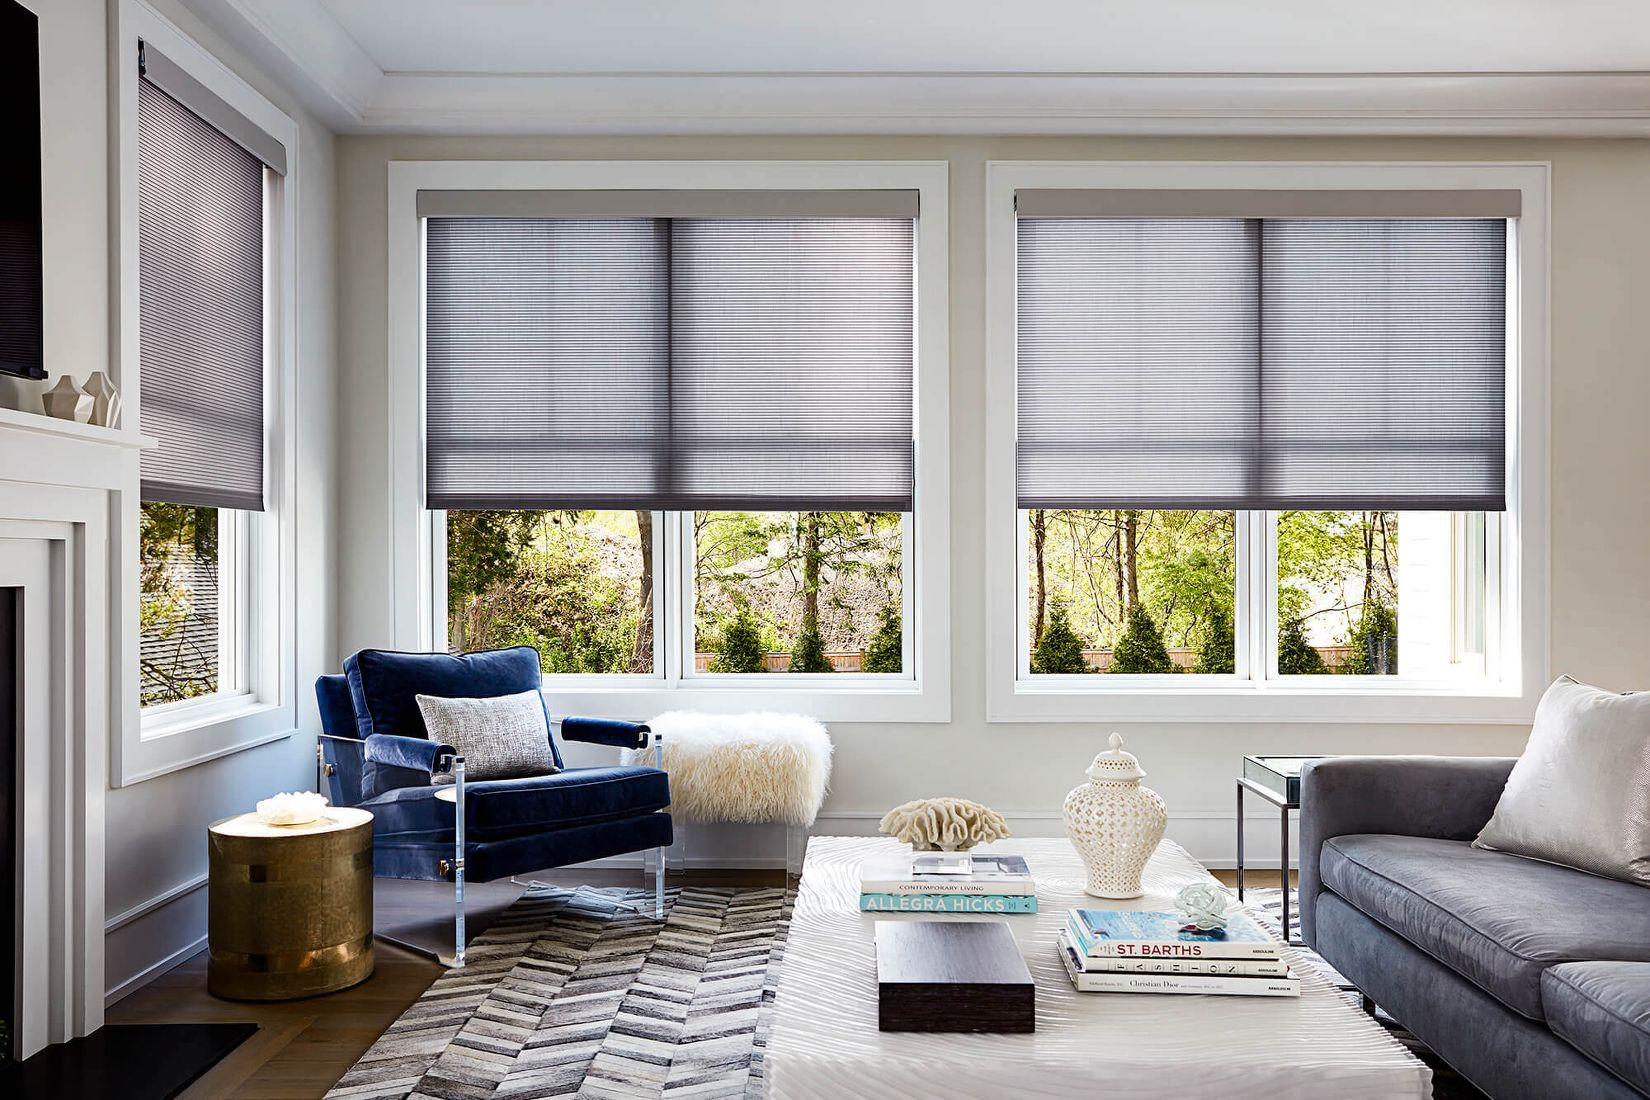 Bali Blinds Style Ornamental Is One Of Many Fafbric Roller Shades By Bali